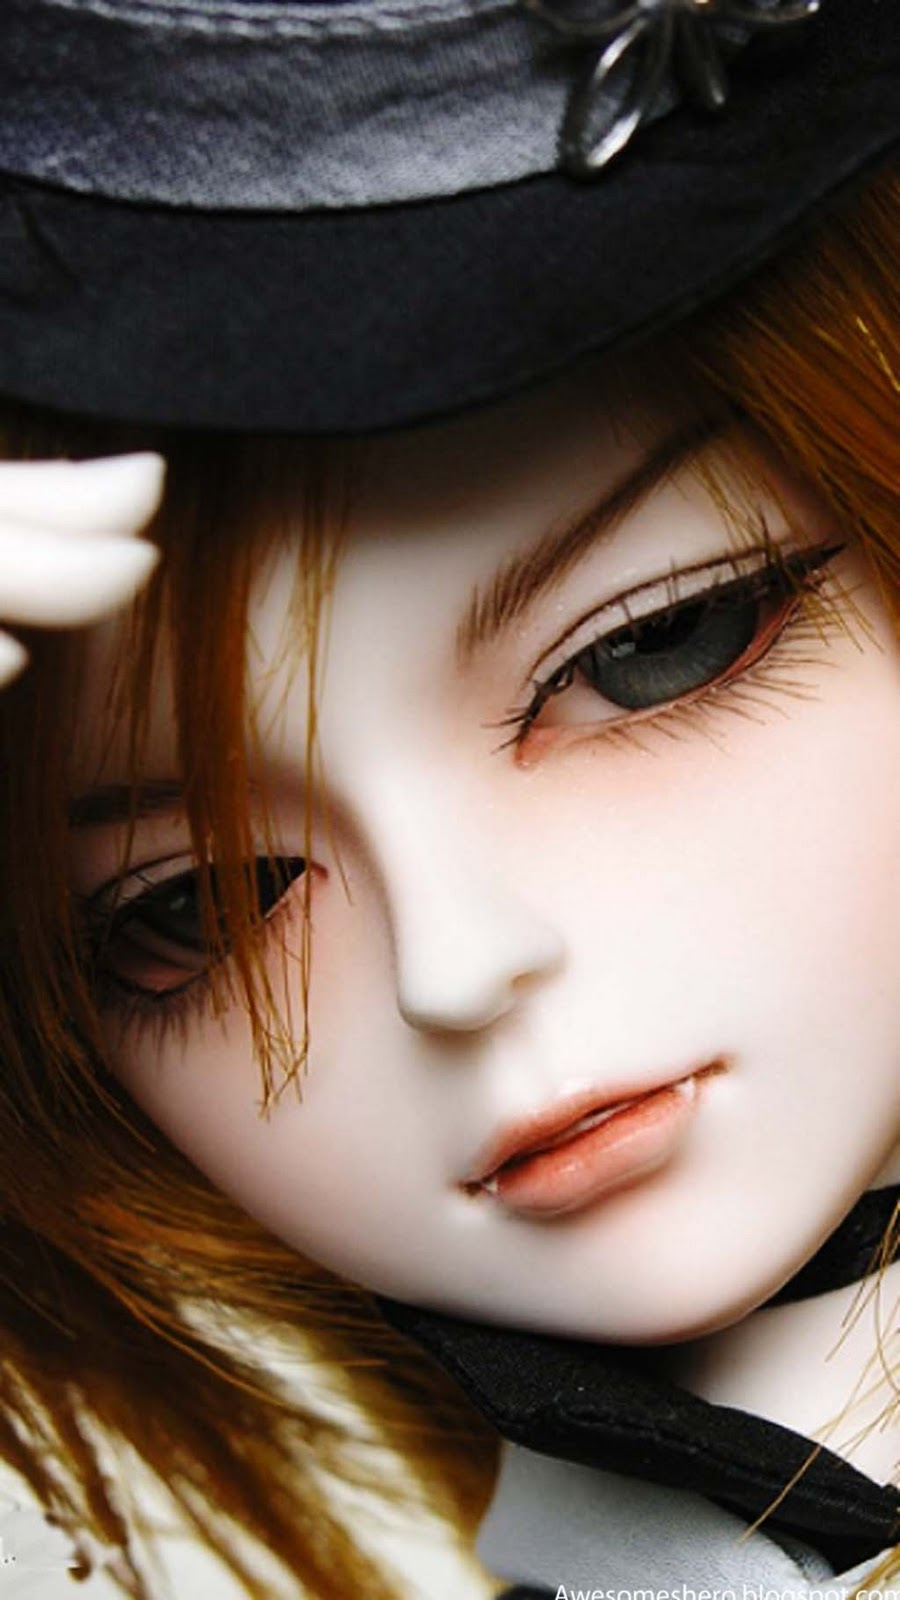 image gallary 7 beautiful cute dolls wallpapers coleetion